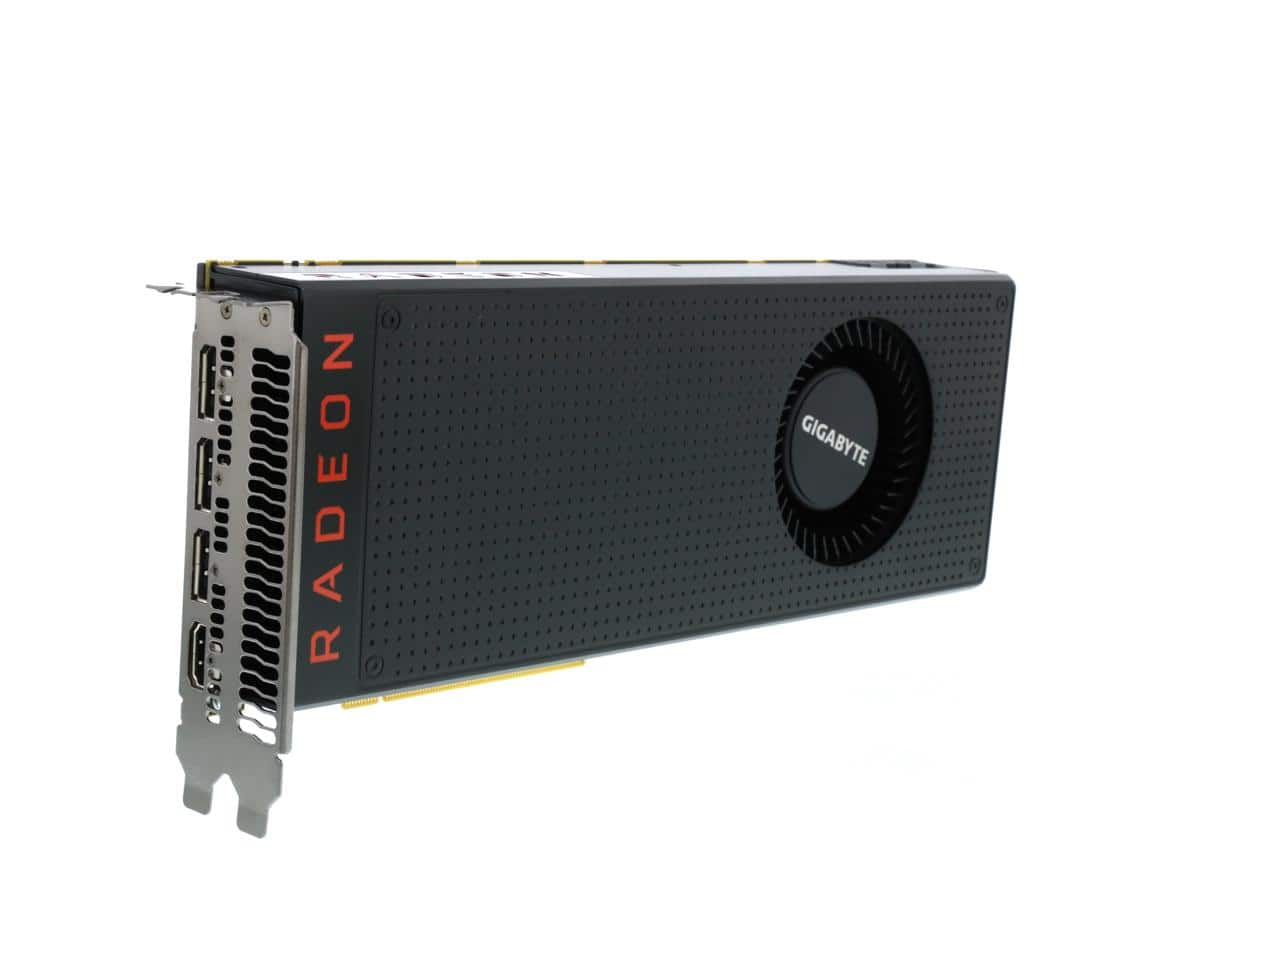 Gigabyte RX Vega 56 - $389.99 after $20.00 rebate